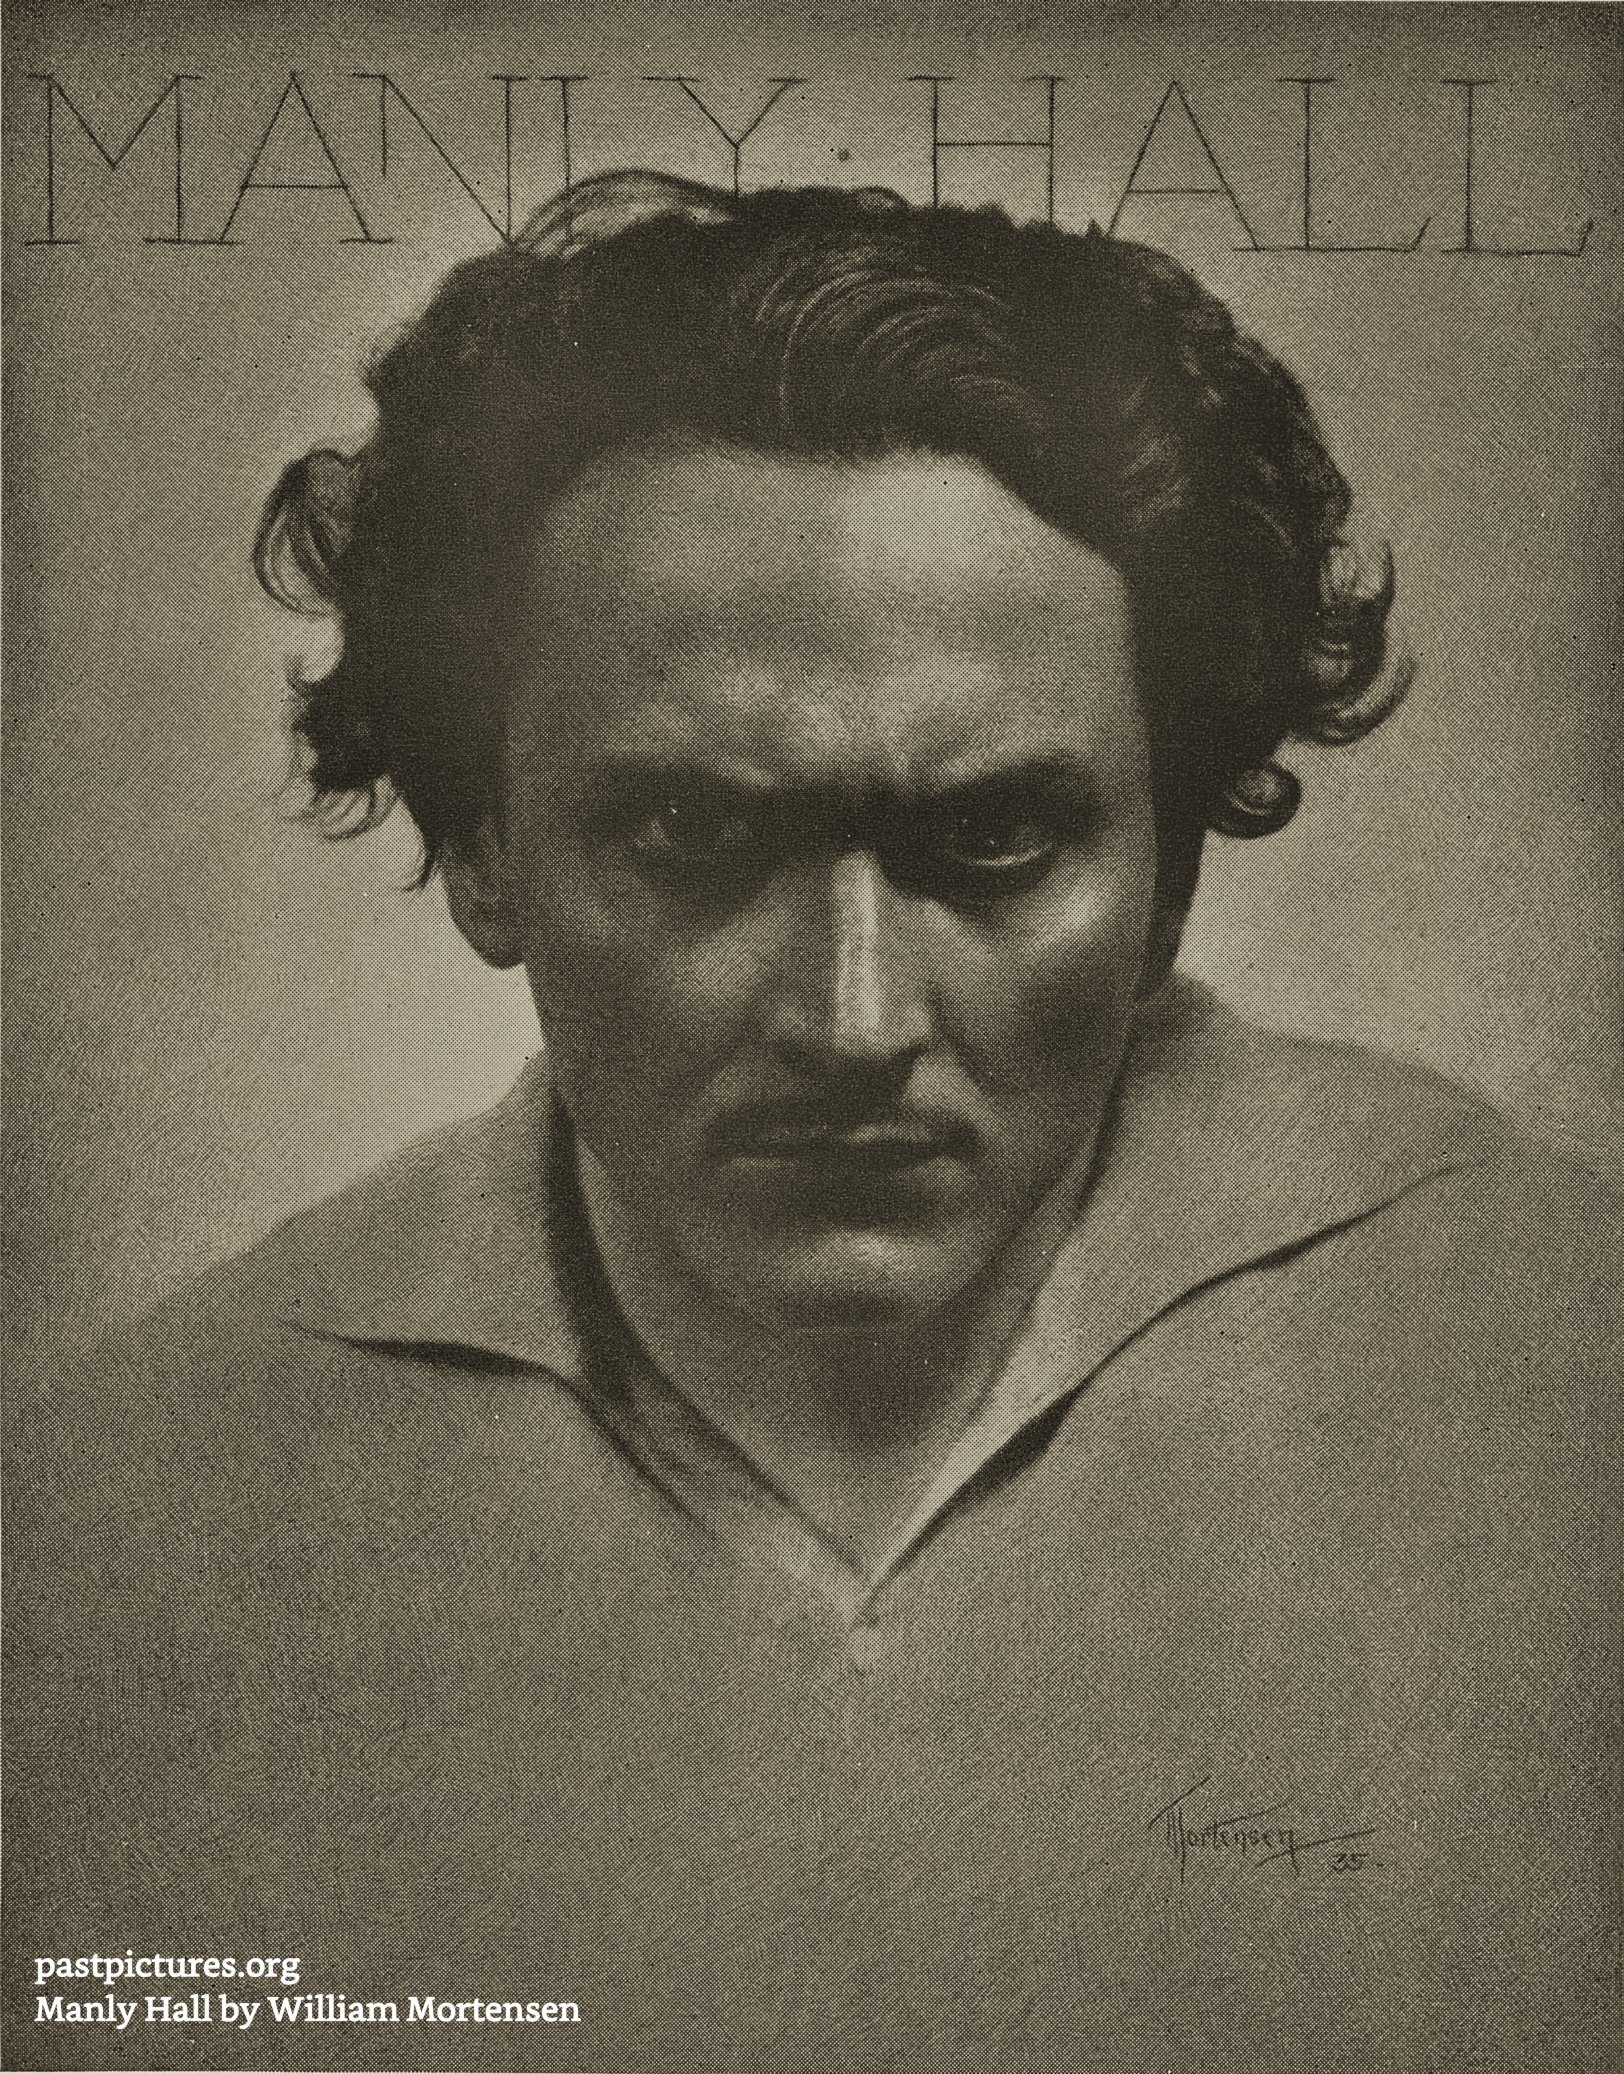 Manly Hall by William Mortensen 1935